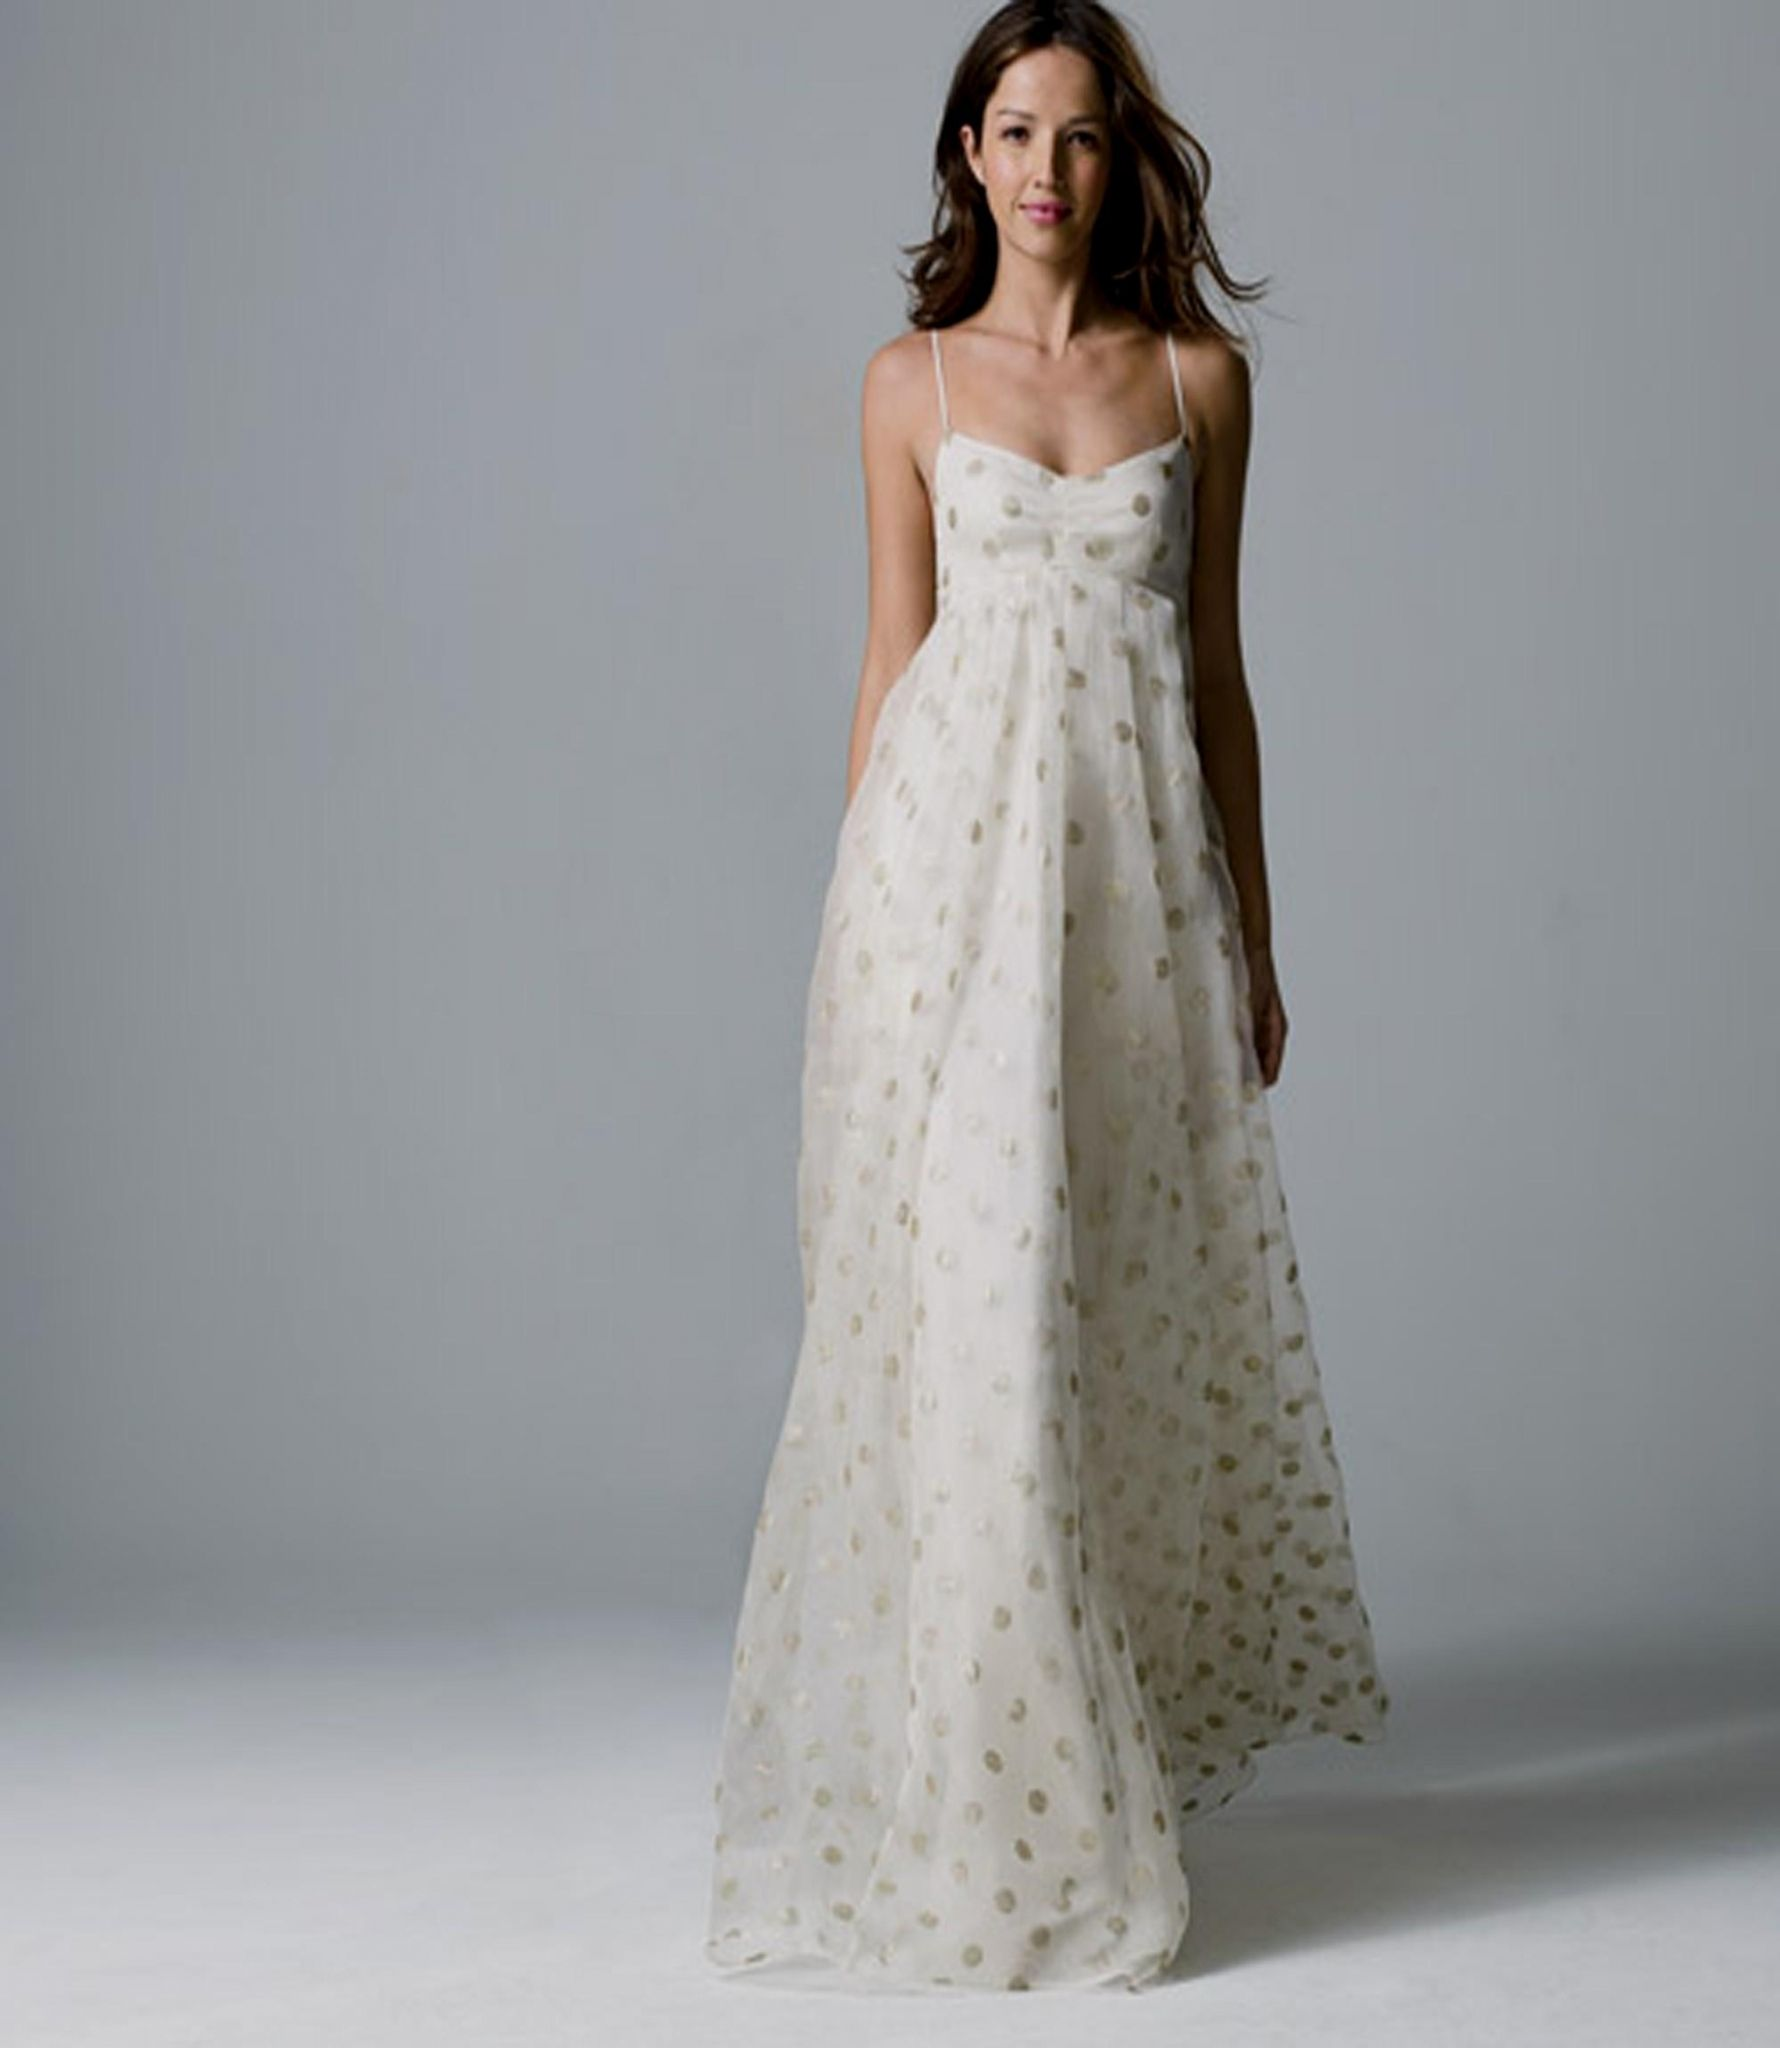 summer casual wedding dresses - plus size dresses for wedding guest ...